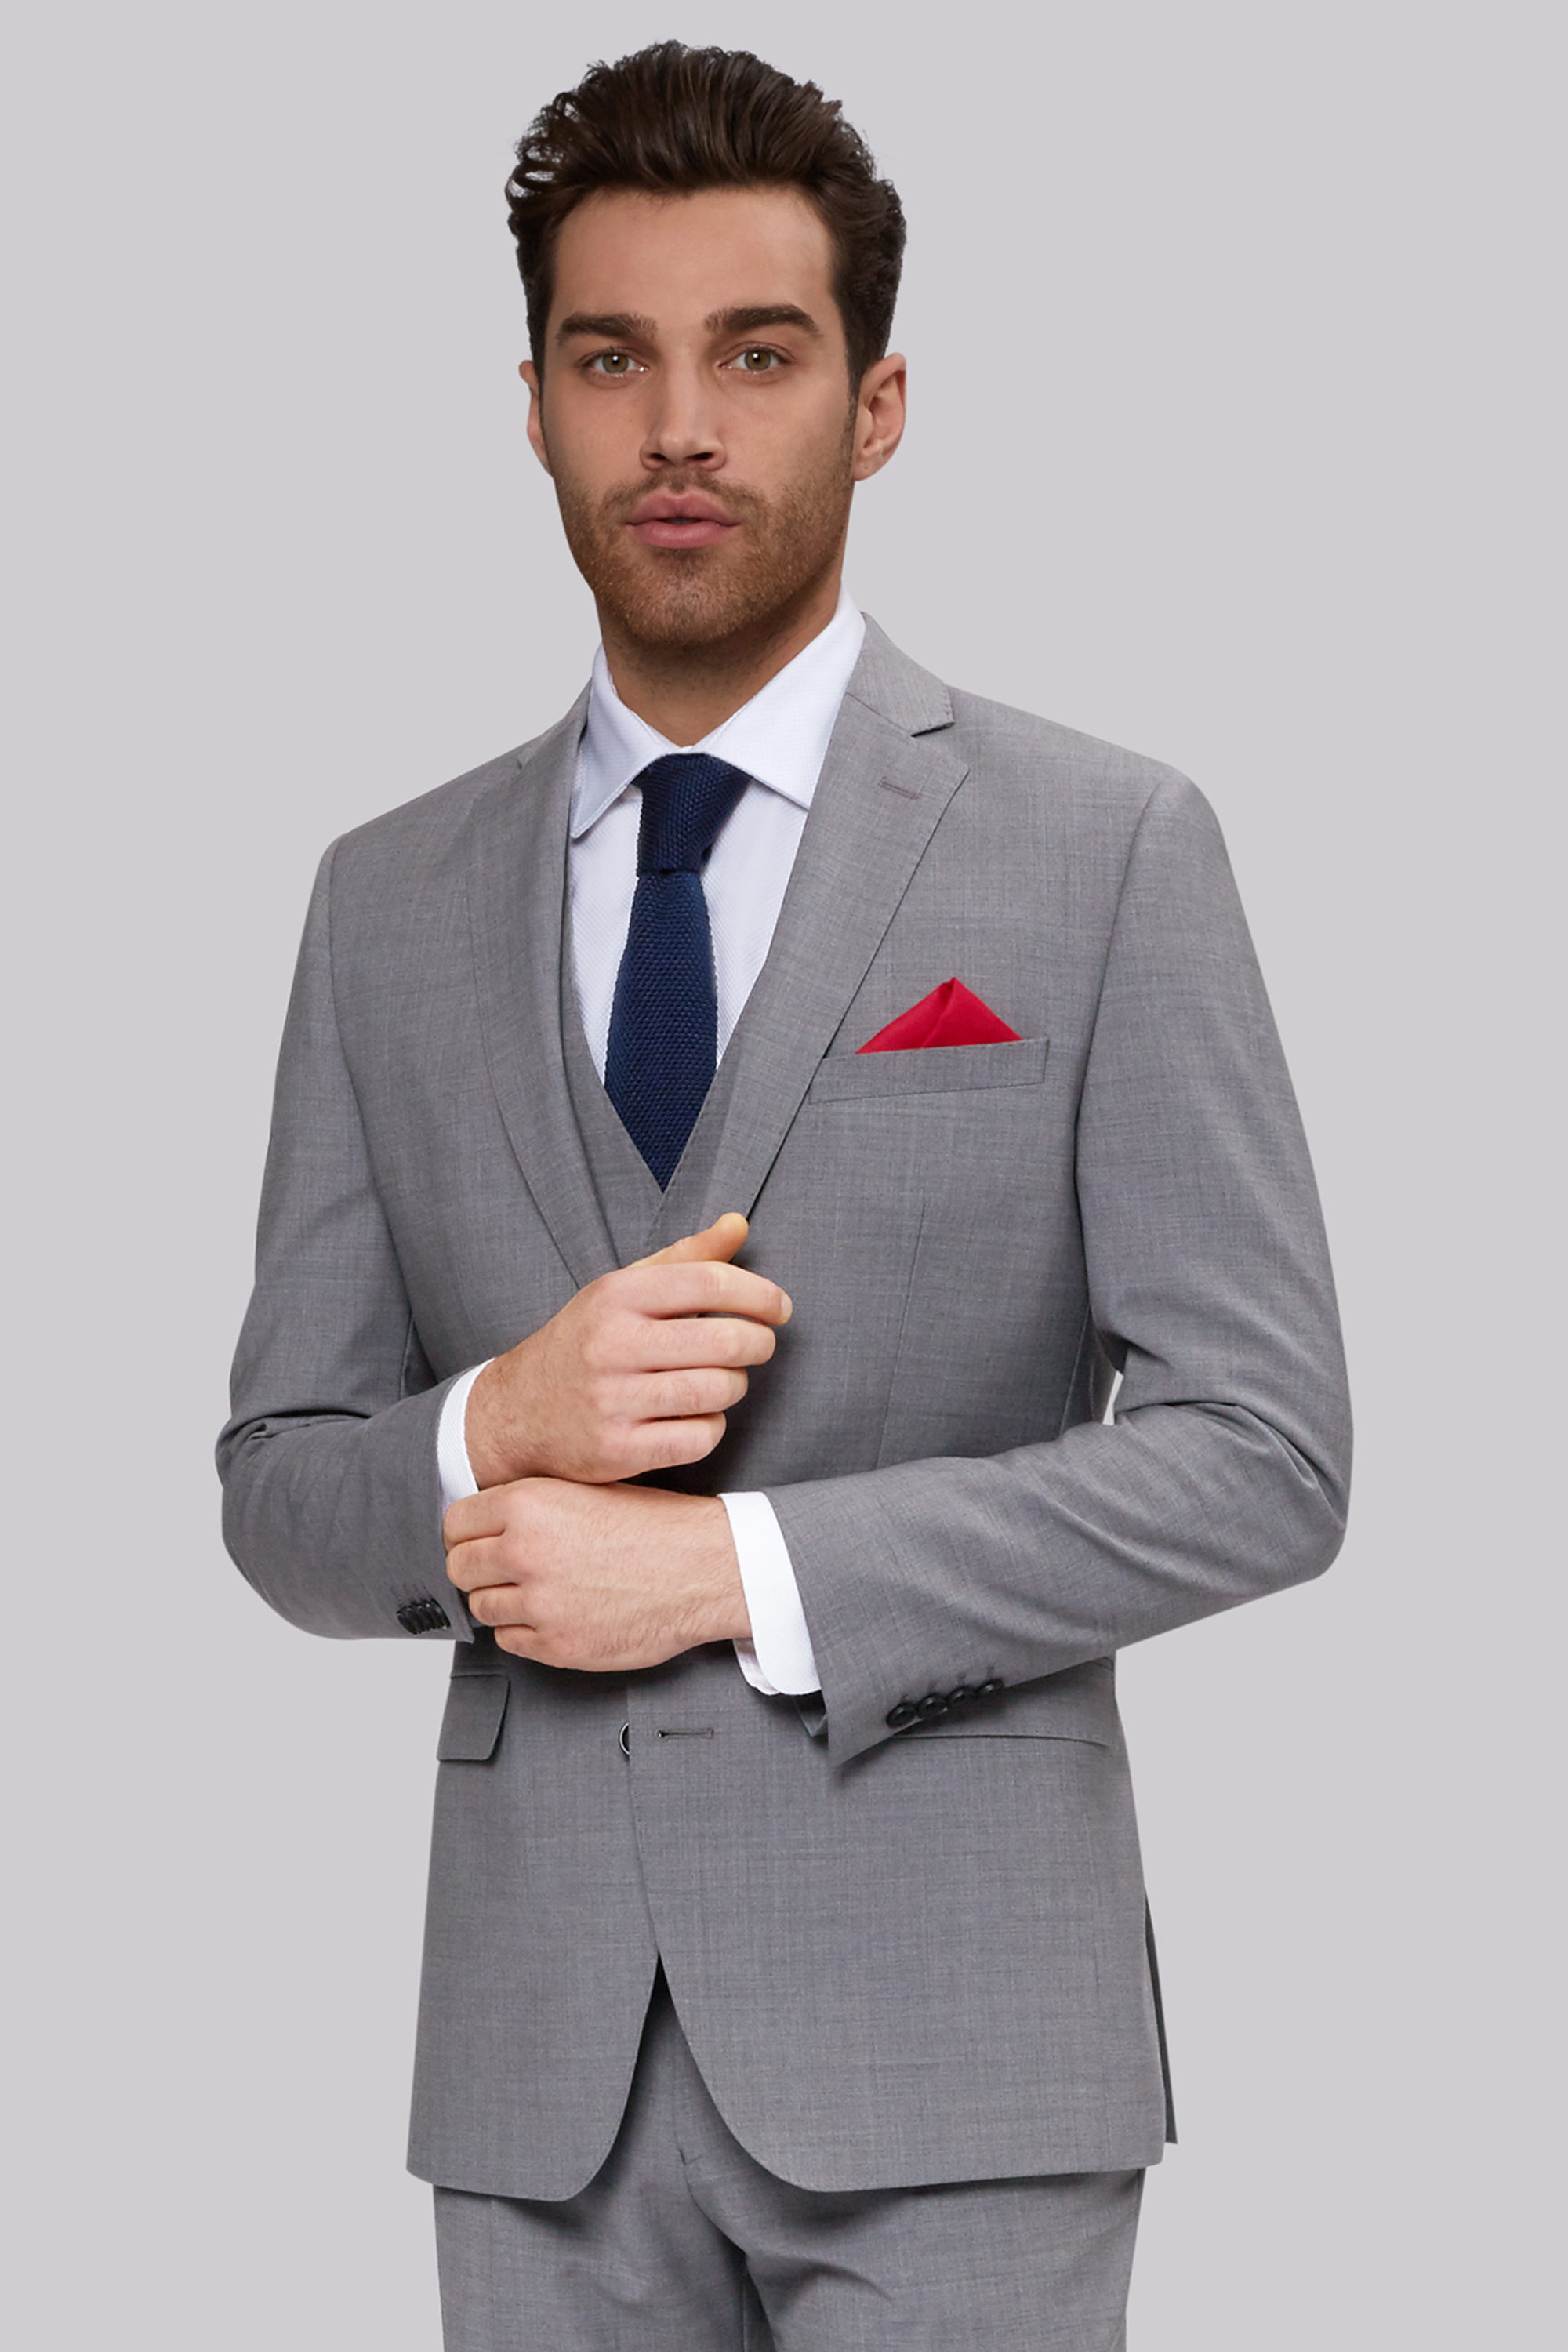 Men's Big and Tall Suits | Moss Bros